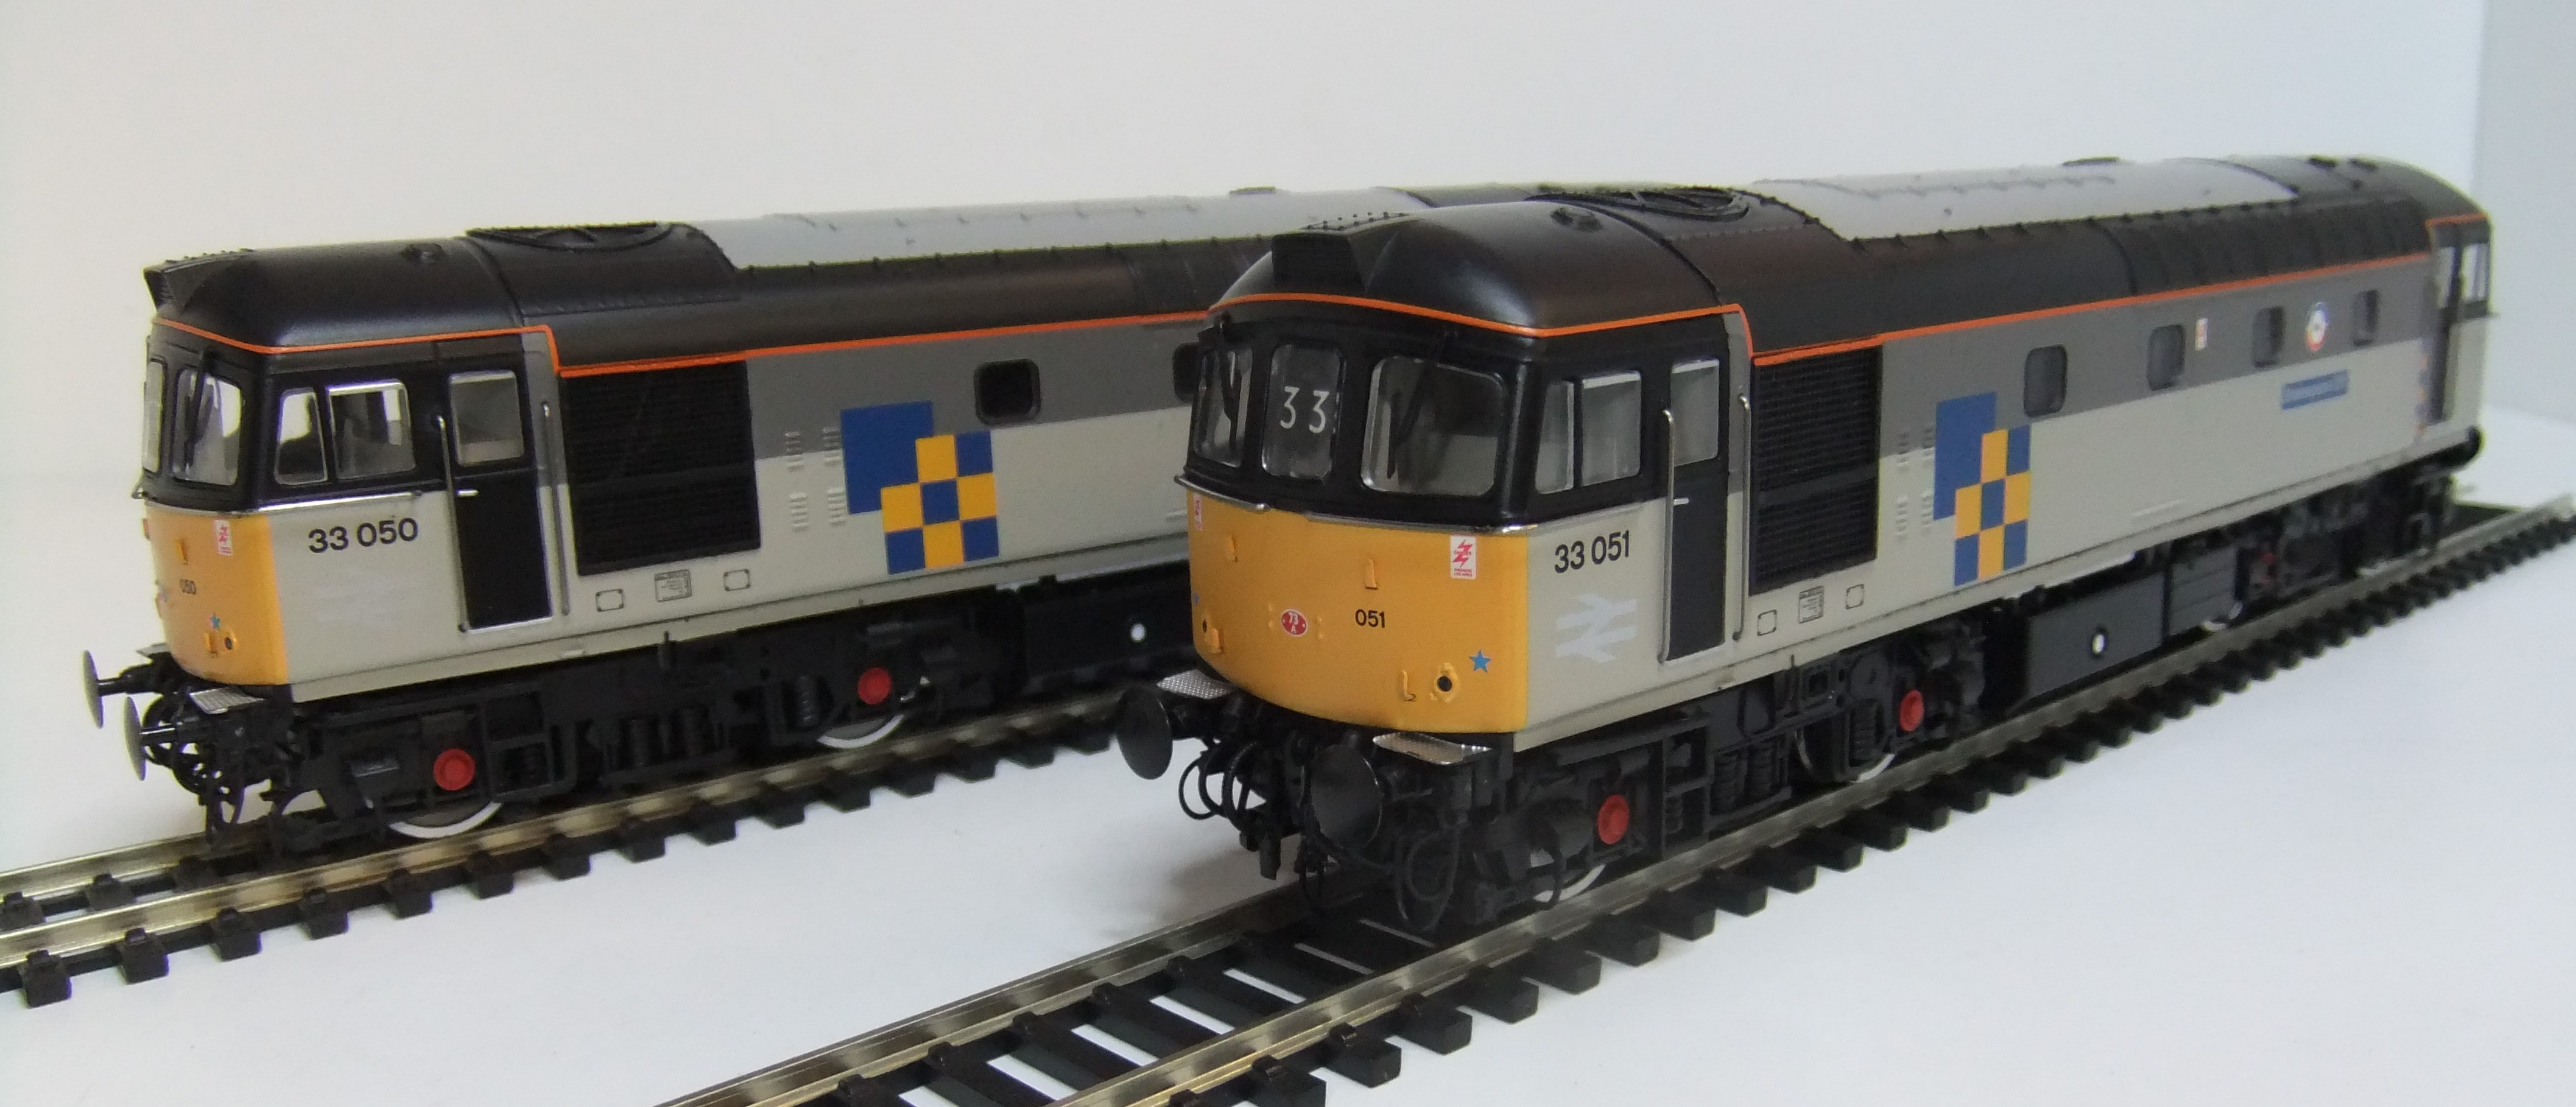 3440 Pair of Class 33 locos Railfreight Construction